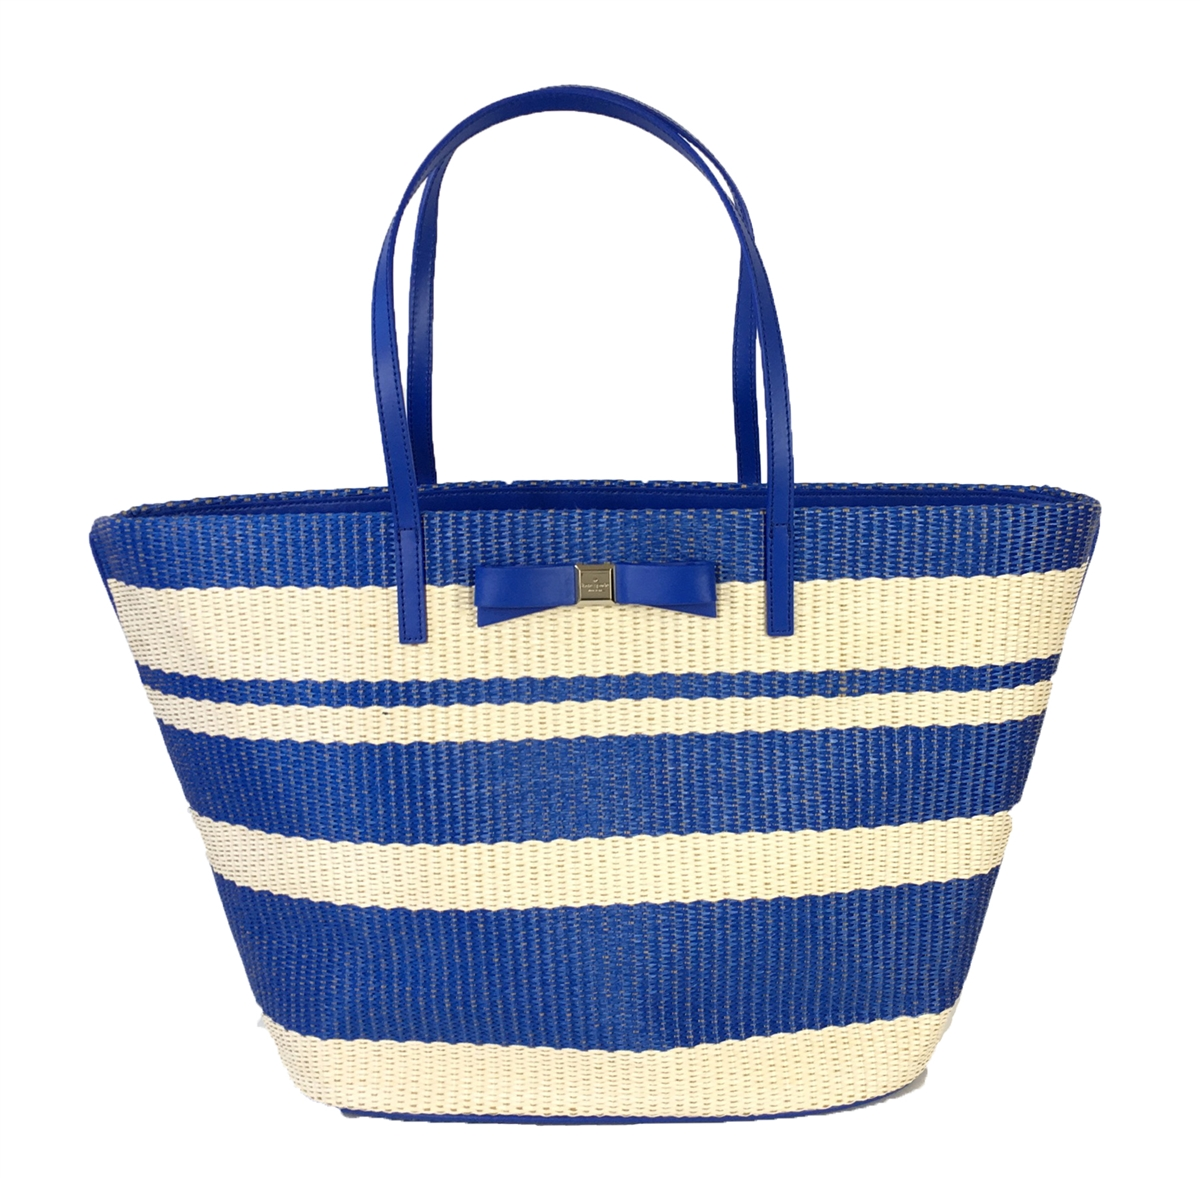 Kate Spade 'Wicklow Court' Anabette Striped Large Straw Tote Beach ...